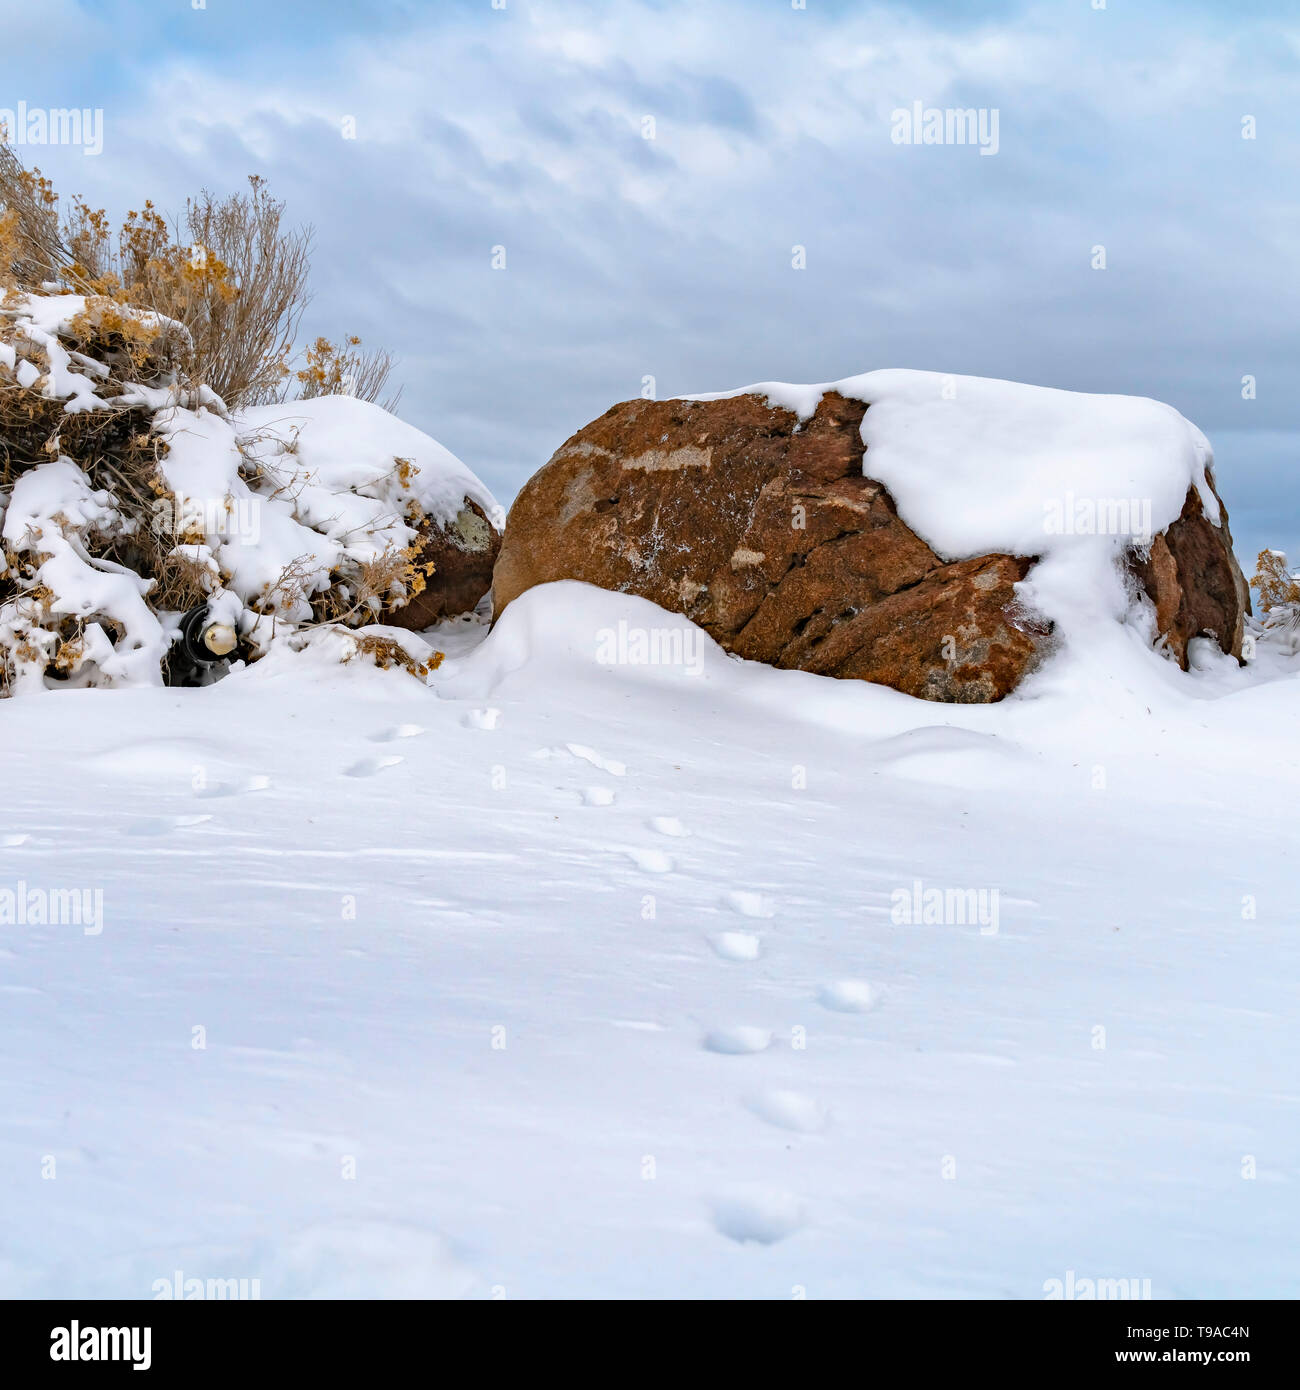 Clear Square Animal tracks on snow covered ground viewed on a frosty winter day - Stock Image